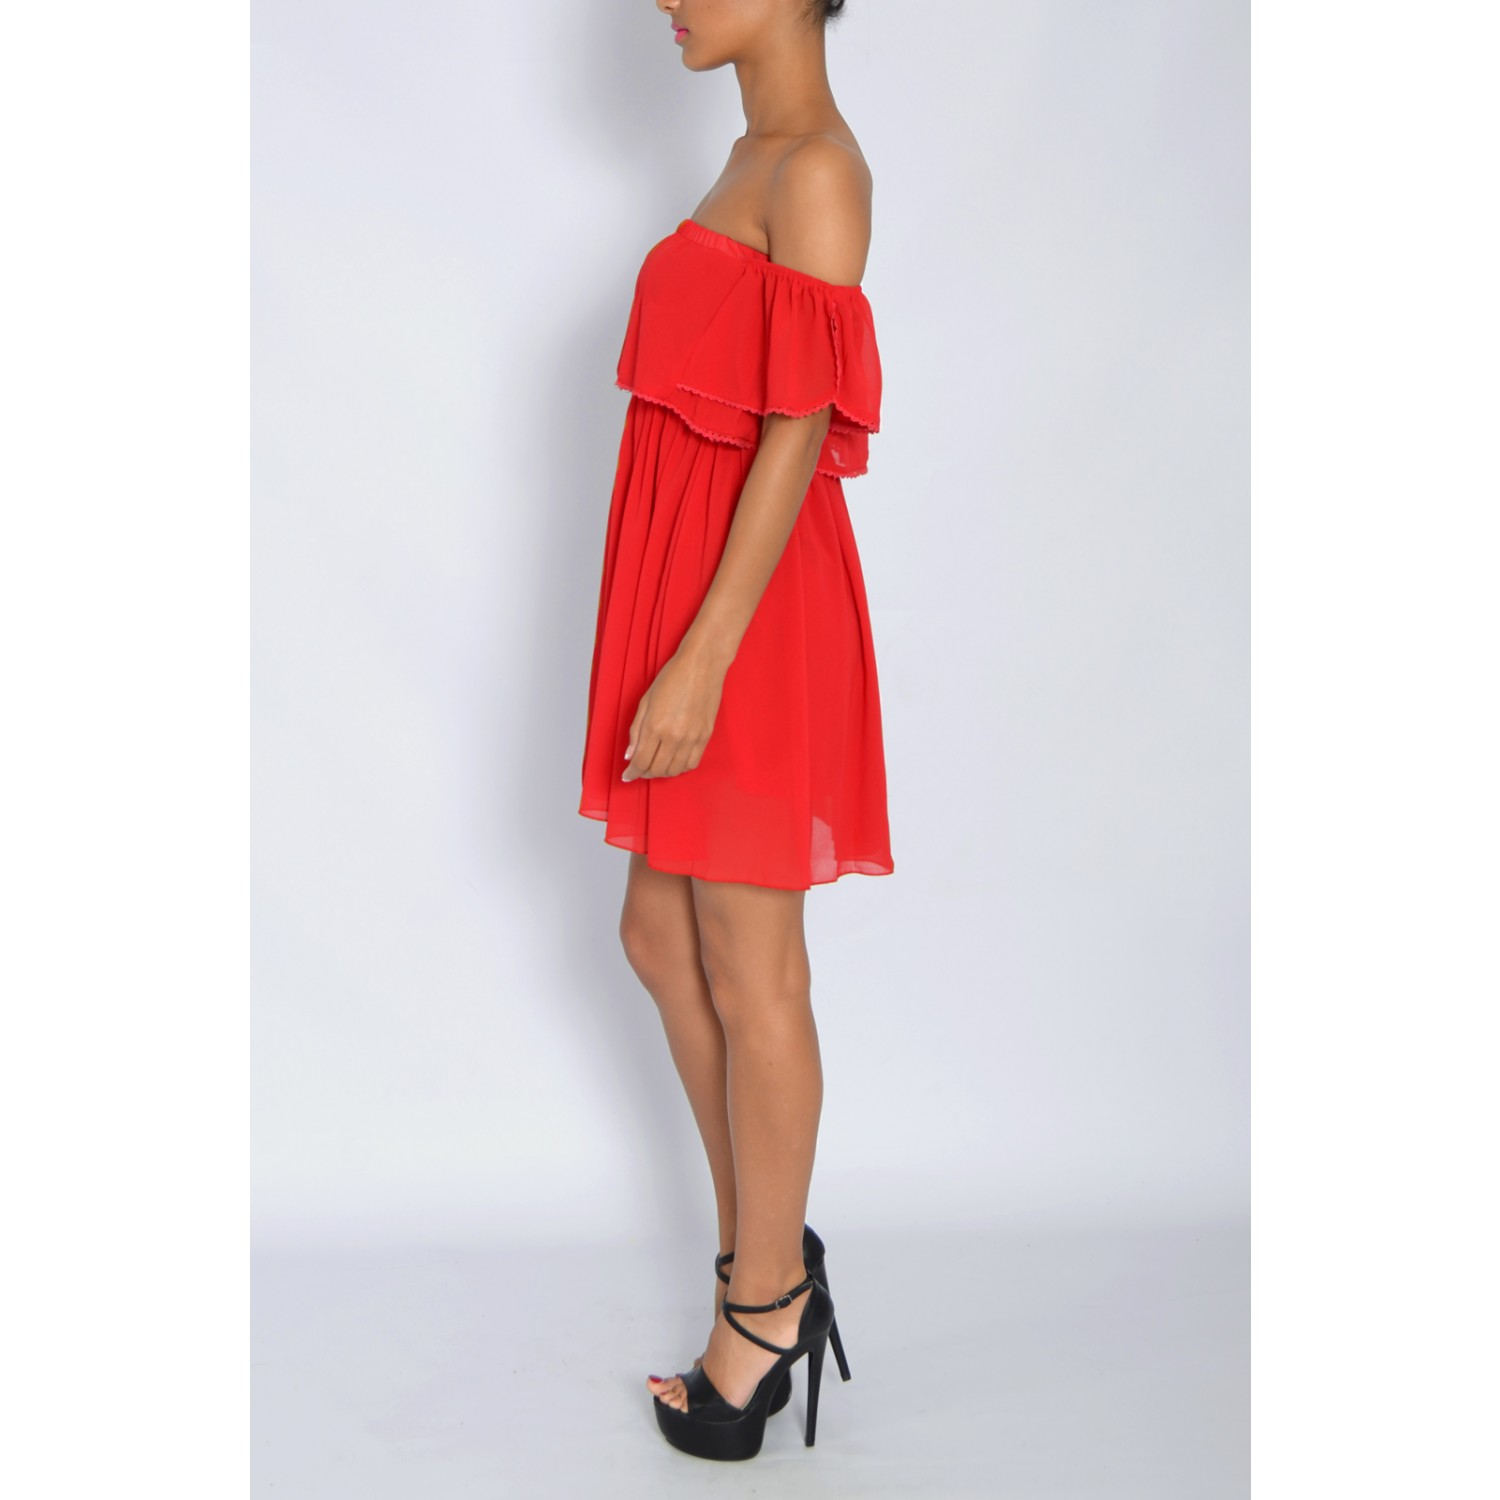 Red Off The Shoulder Frill Dress From Rare London